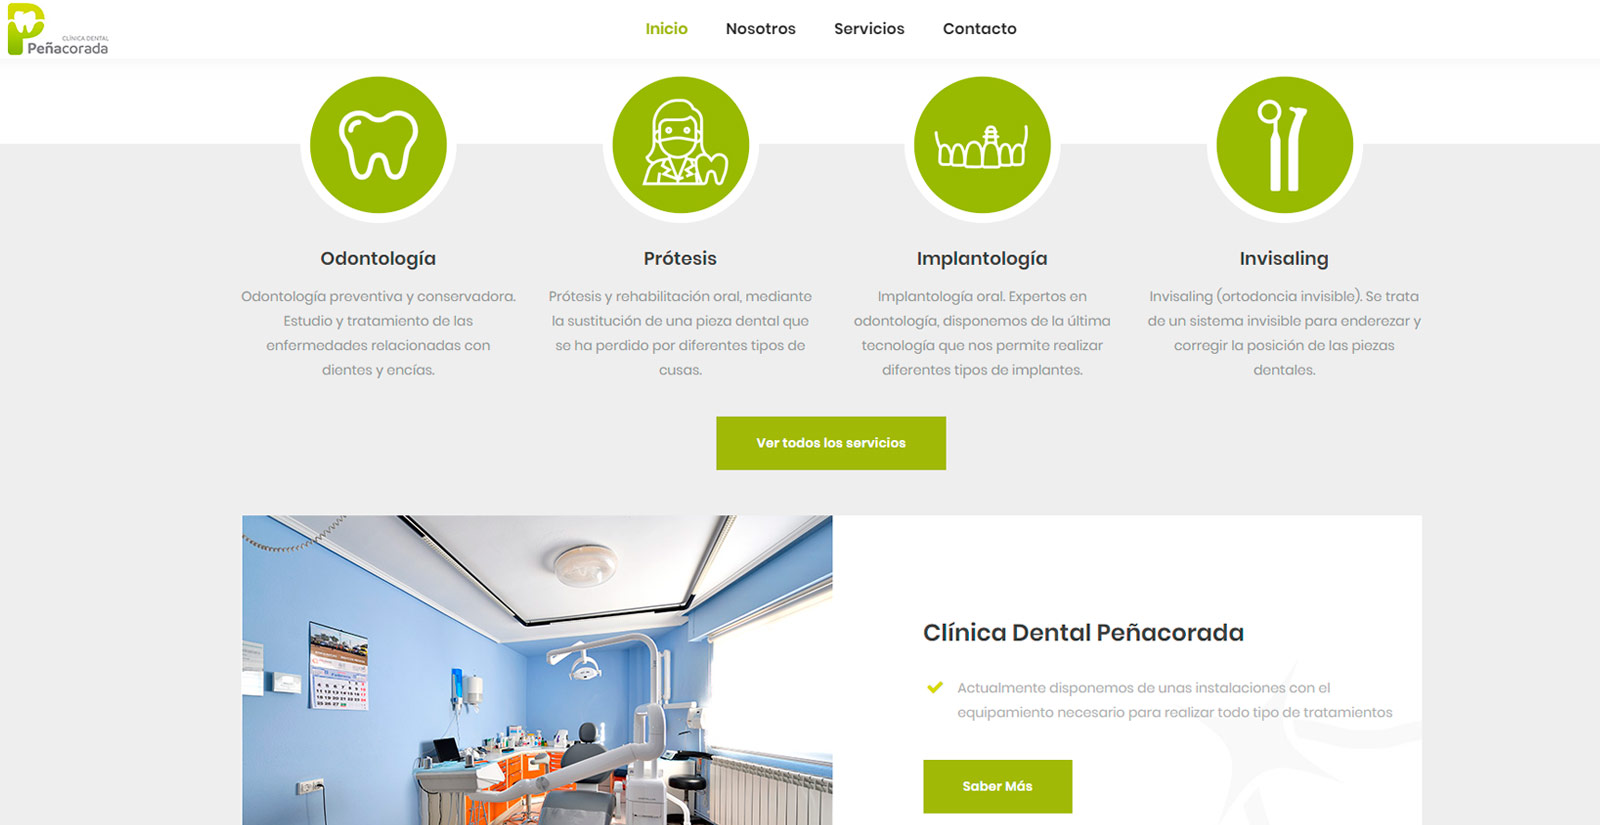 Clínica dental Peñacorada León